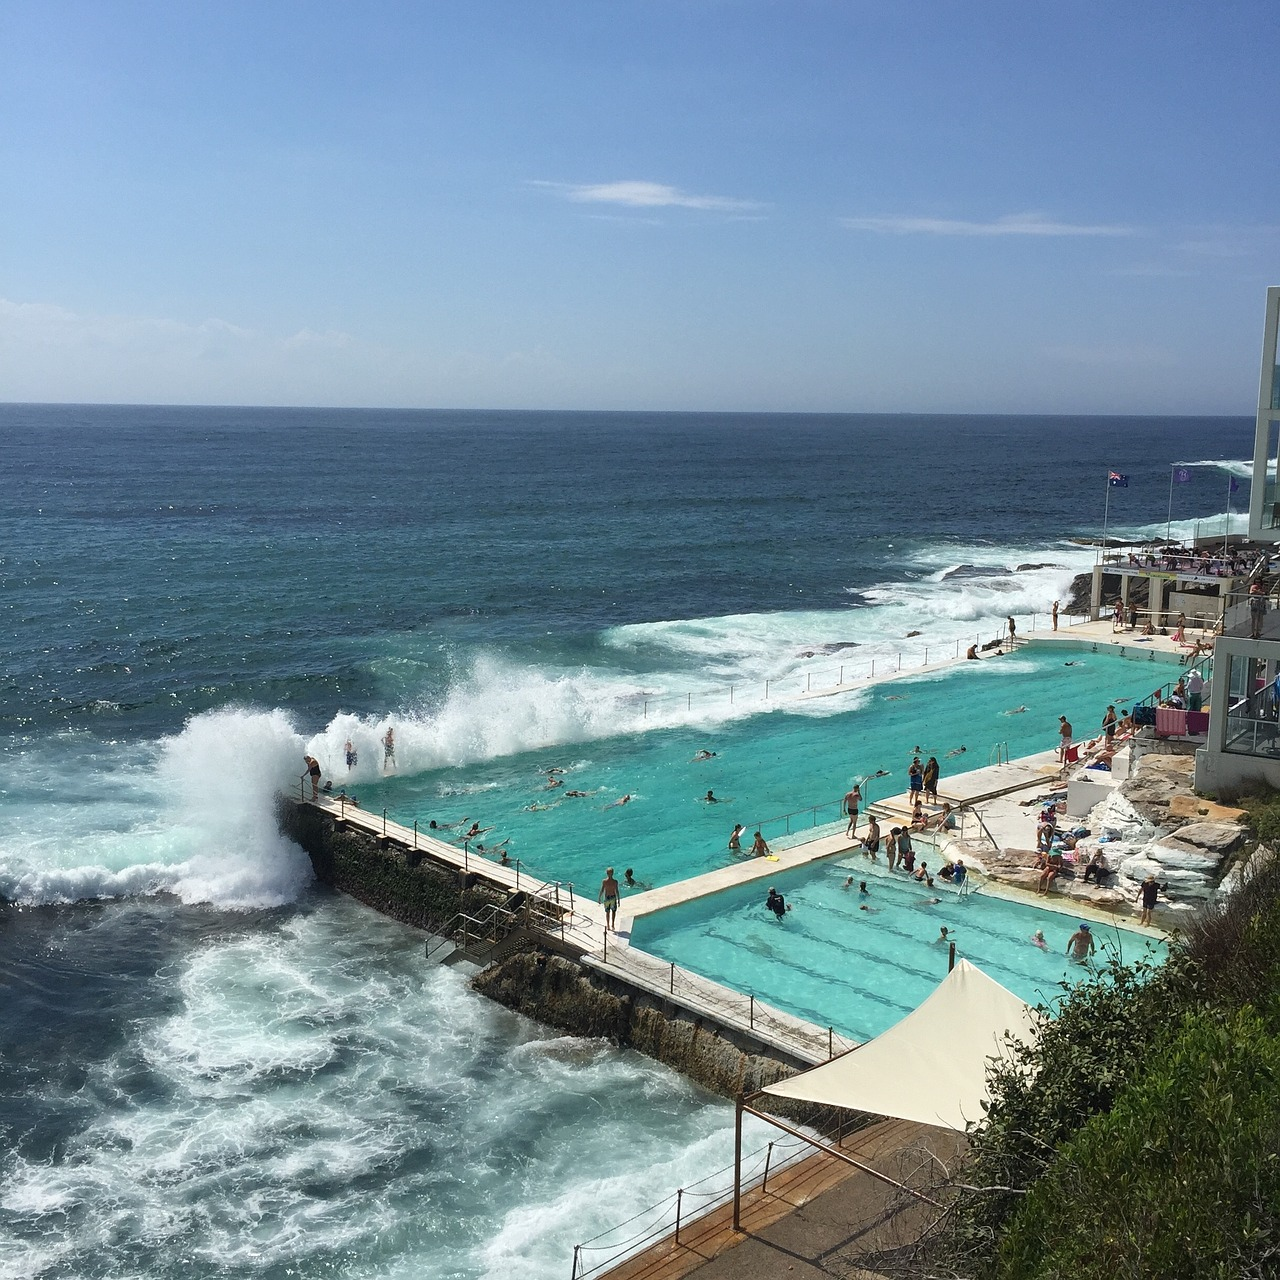 Bondi Beach Pool is one of the relaxing activities in Sydney. Discover what to do in Sydney and insider tips for Sydney from a local from this ultimate guide to Sydney. #sydney #sydneytrip #sydneyattractions #sydneyaustralia #australiatravel #sydneytravel